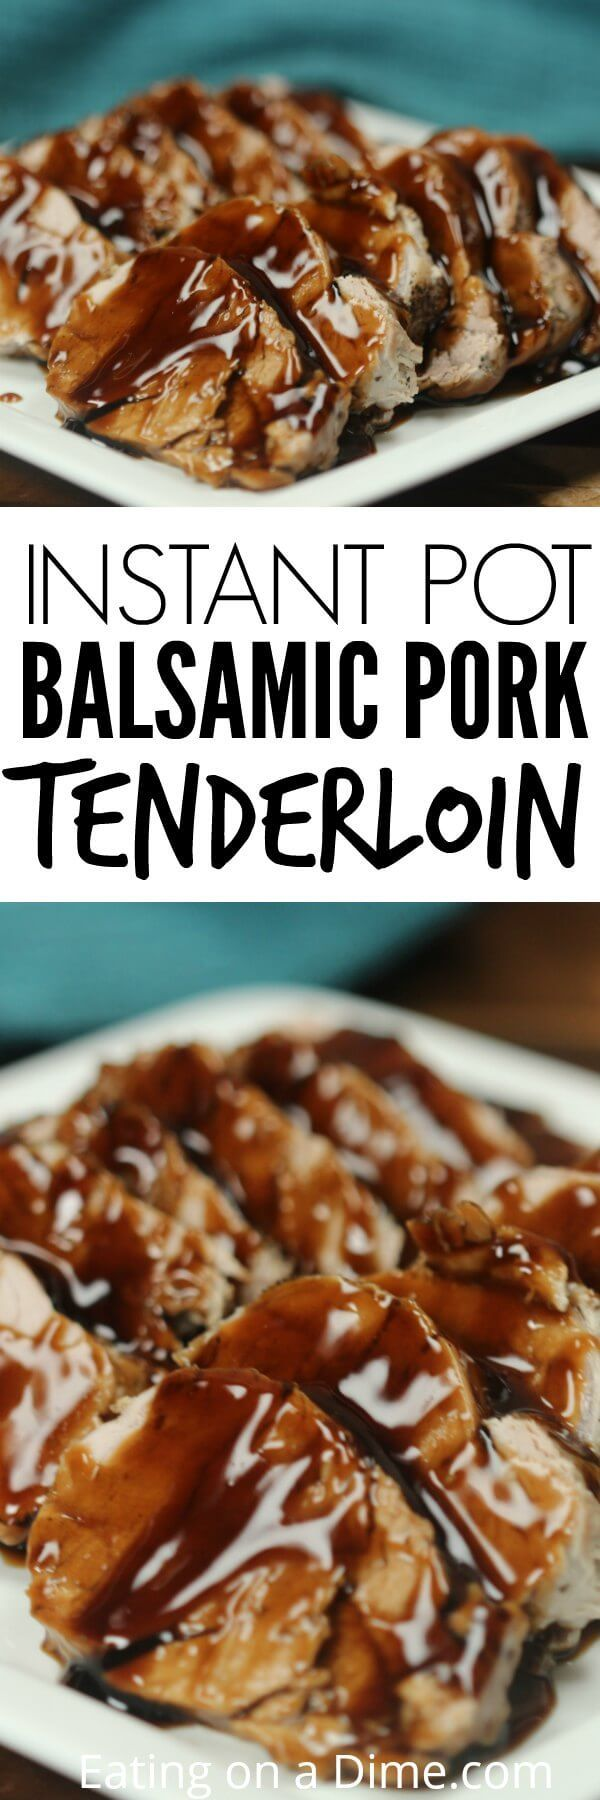 Try Pork Tenderloin Pressure Cooker Recipe for an amazing meal in minutes.The glaze on Instant pot balsamic pork tenderloin recipe is so tasty.Try it today!